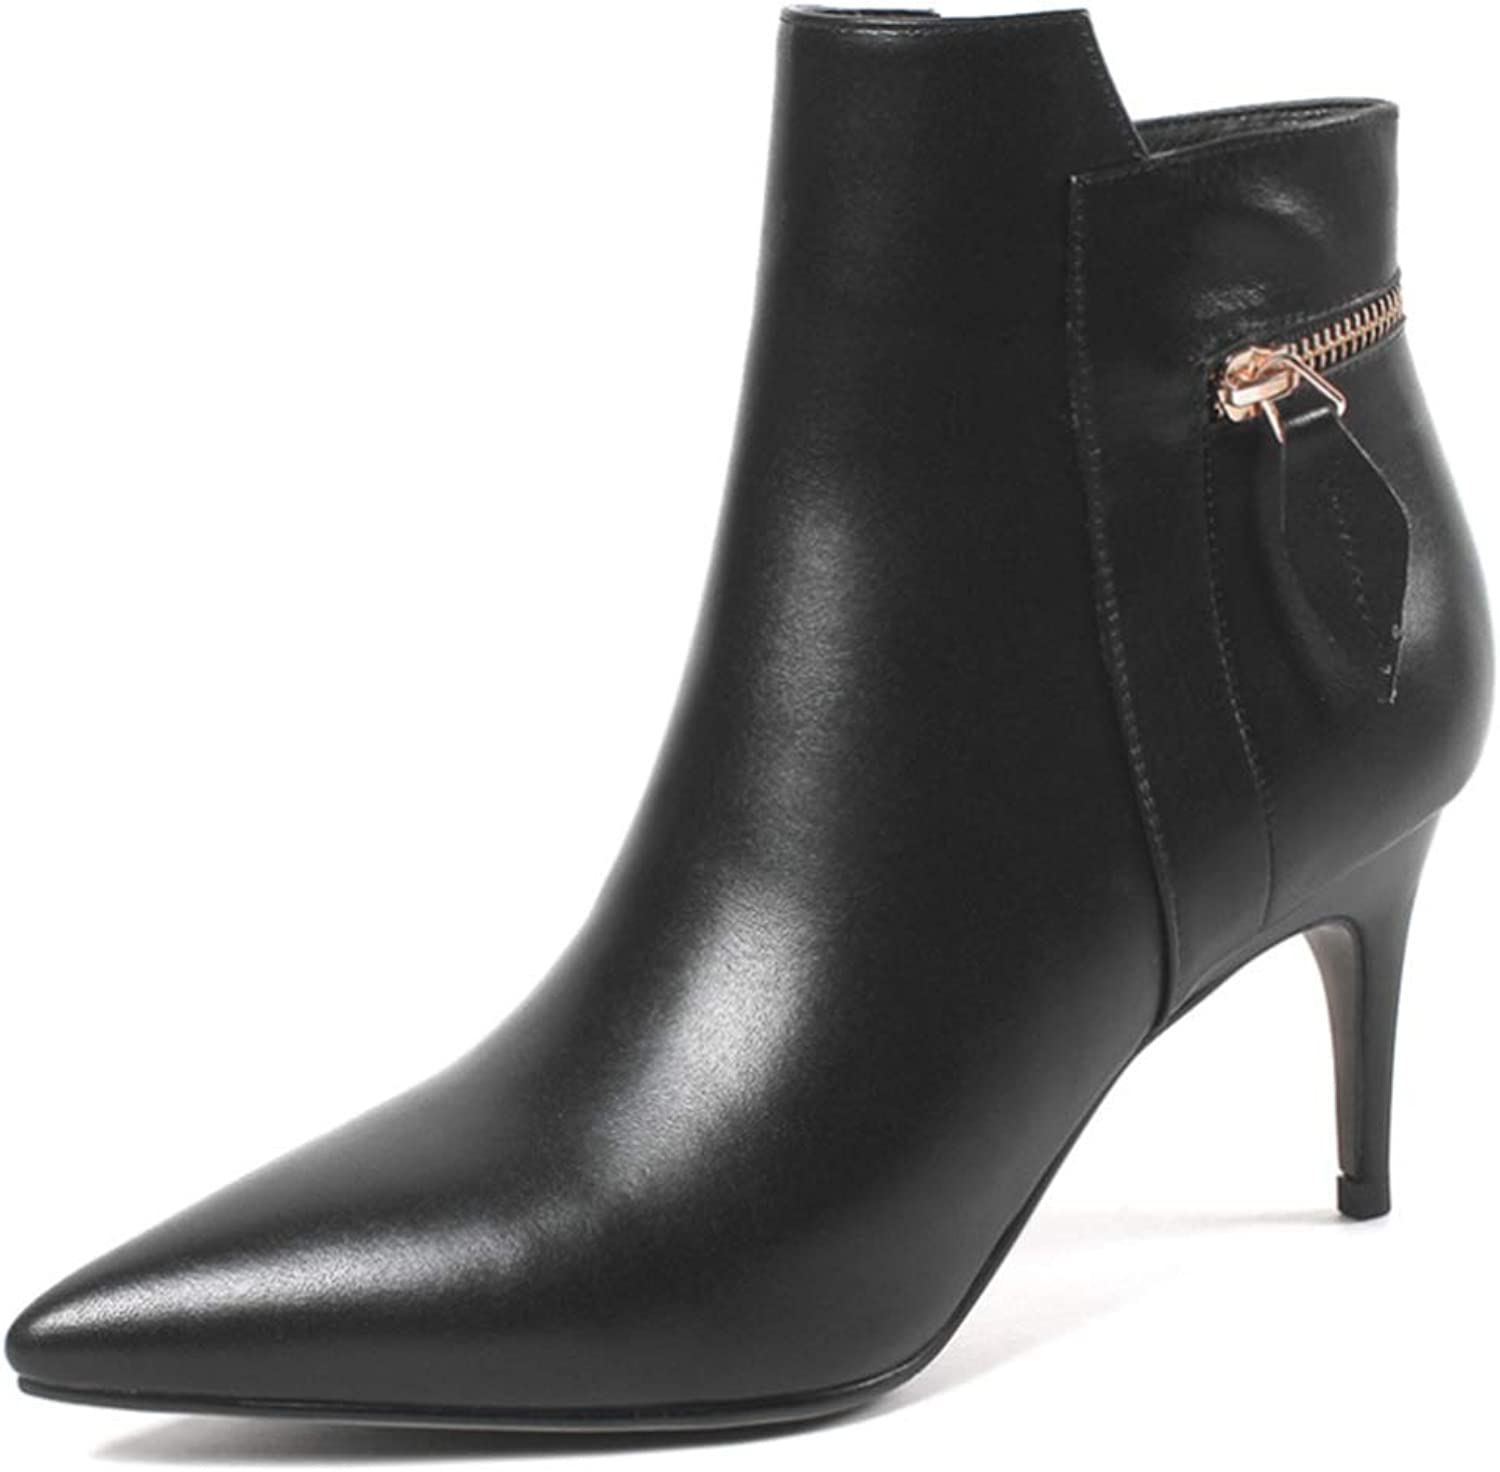 Shiney Women's Martin Boots Pointed Leather New Stiletto Heels Side Zip Low Tube High Heel Boots Autumn and Winter